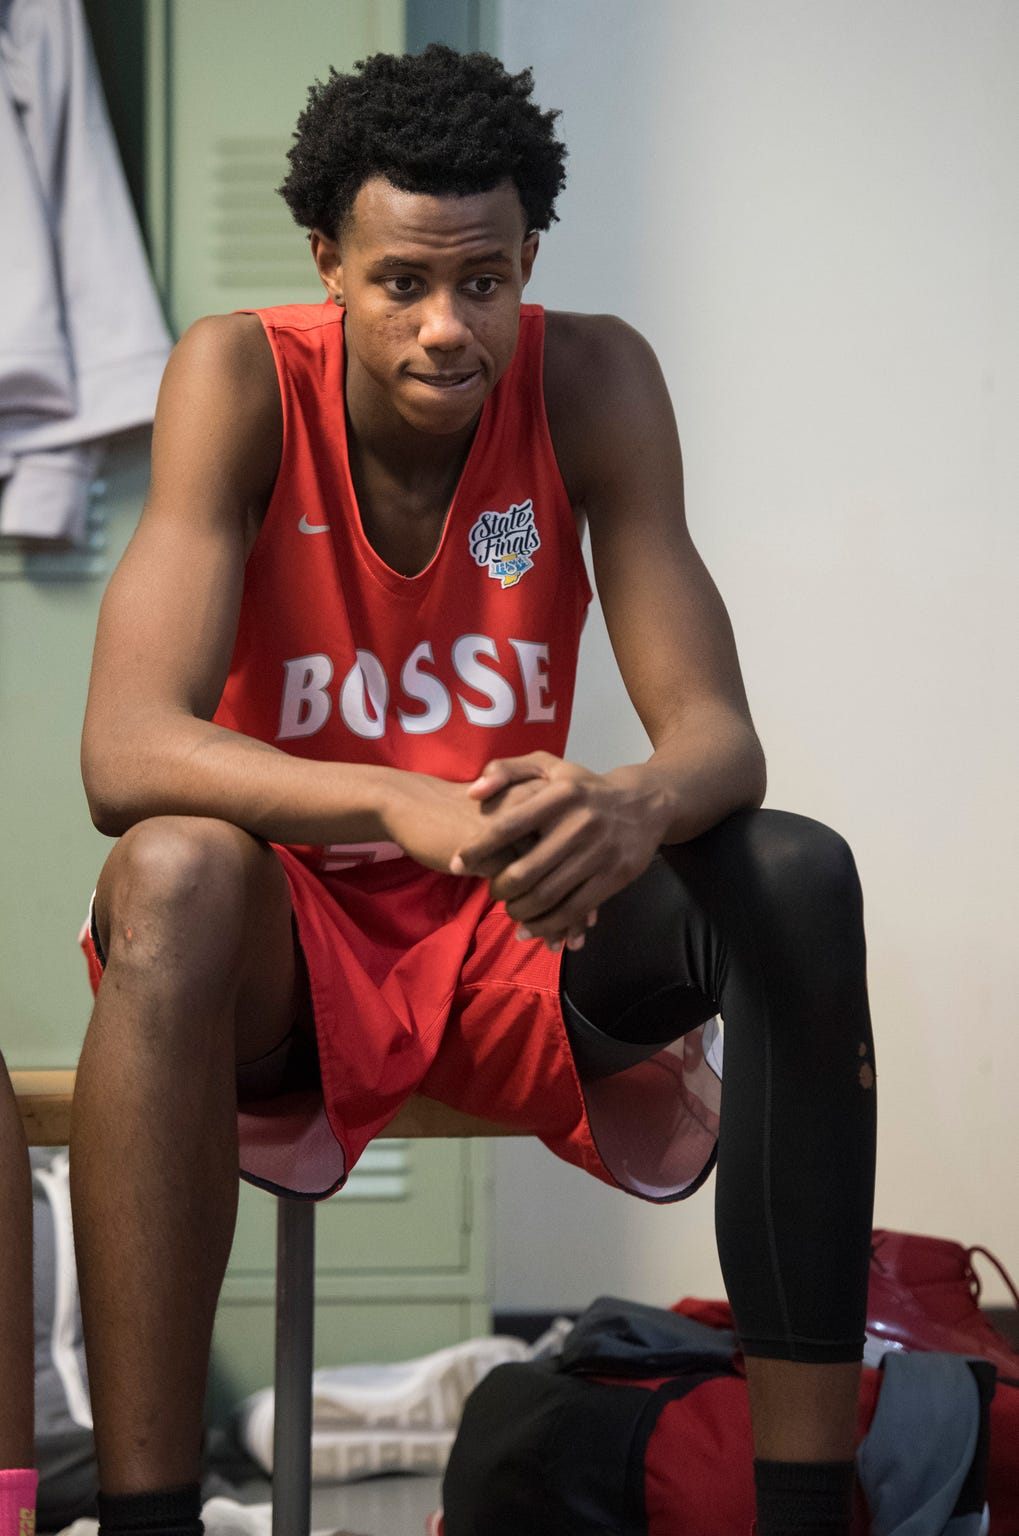 Bosse High School junior Kiyron Powell reflects in the locker room at halftime during the Bosse vs Memorial game Tuesday, Dec. 11, 2018.